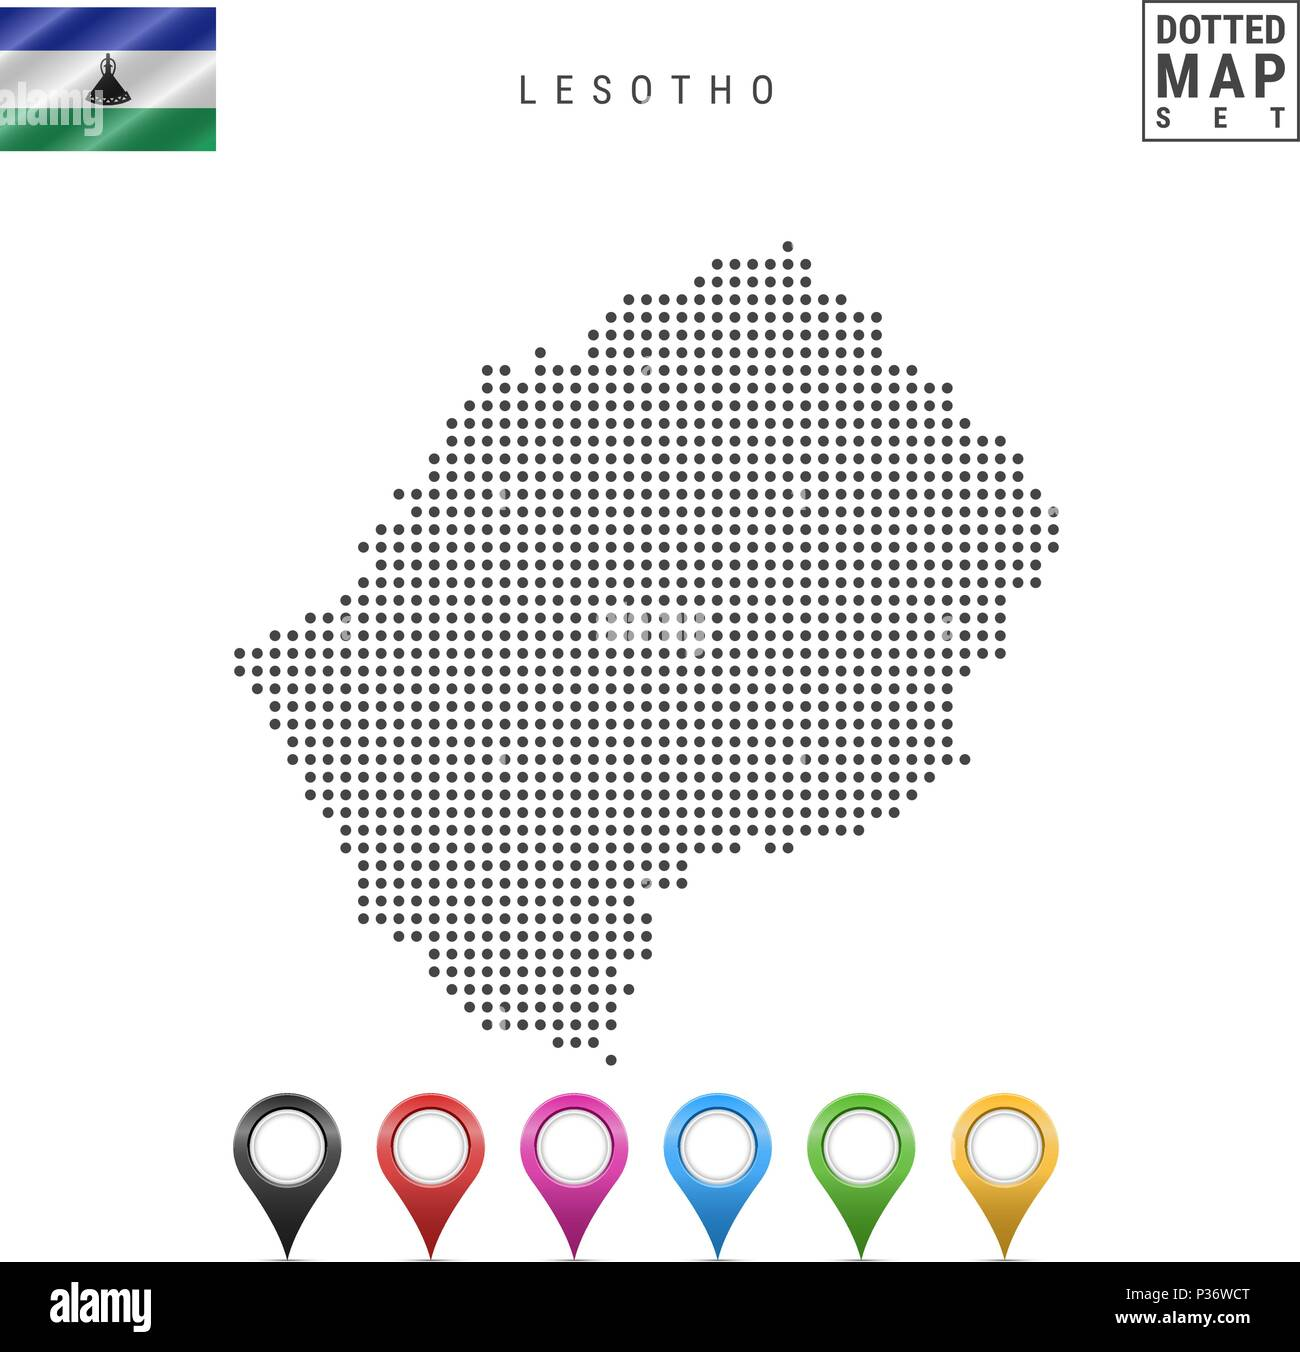 Vector Dotted Map of Lesotho. Simple Silhouette of Lesotho. National Flag of Lesotho. Set of Multicolored Map Markers - Stock Image